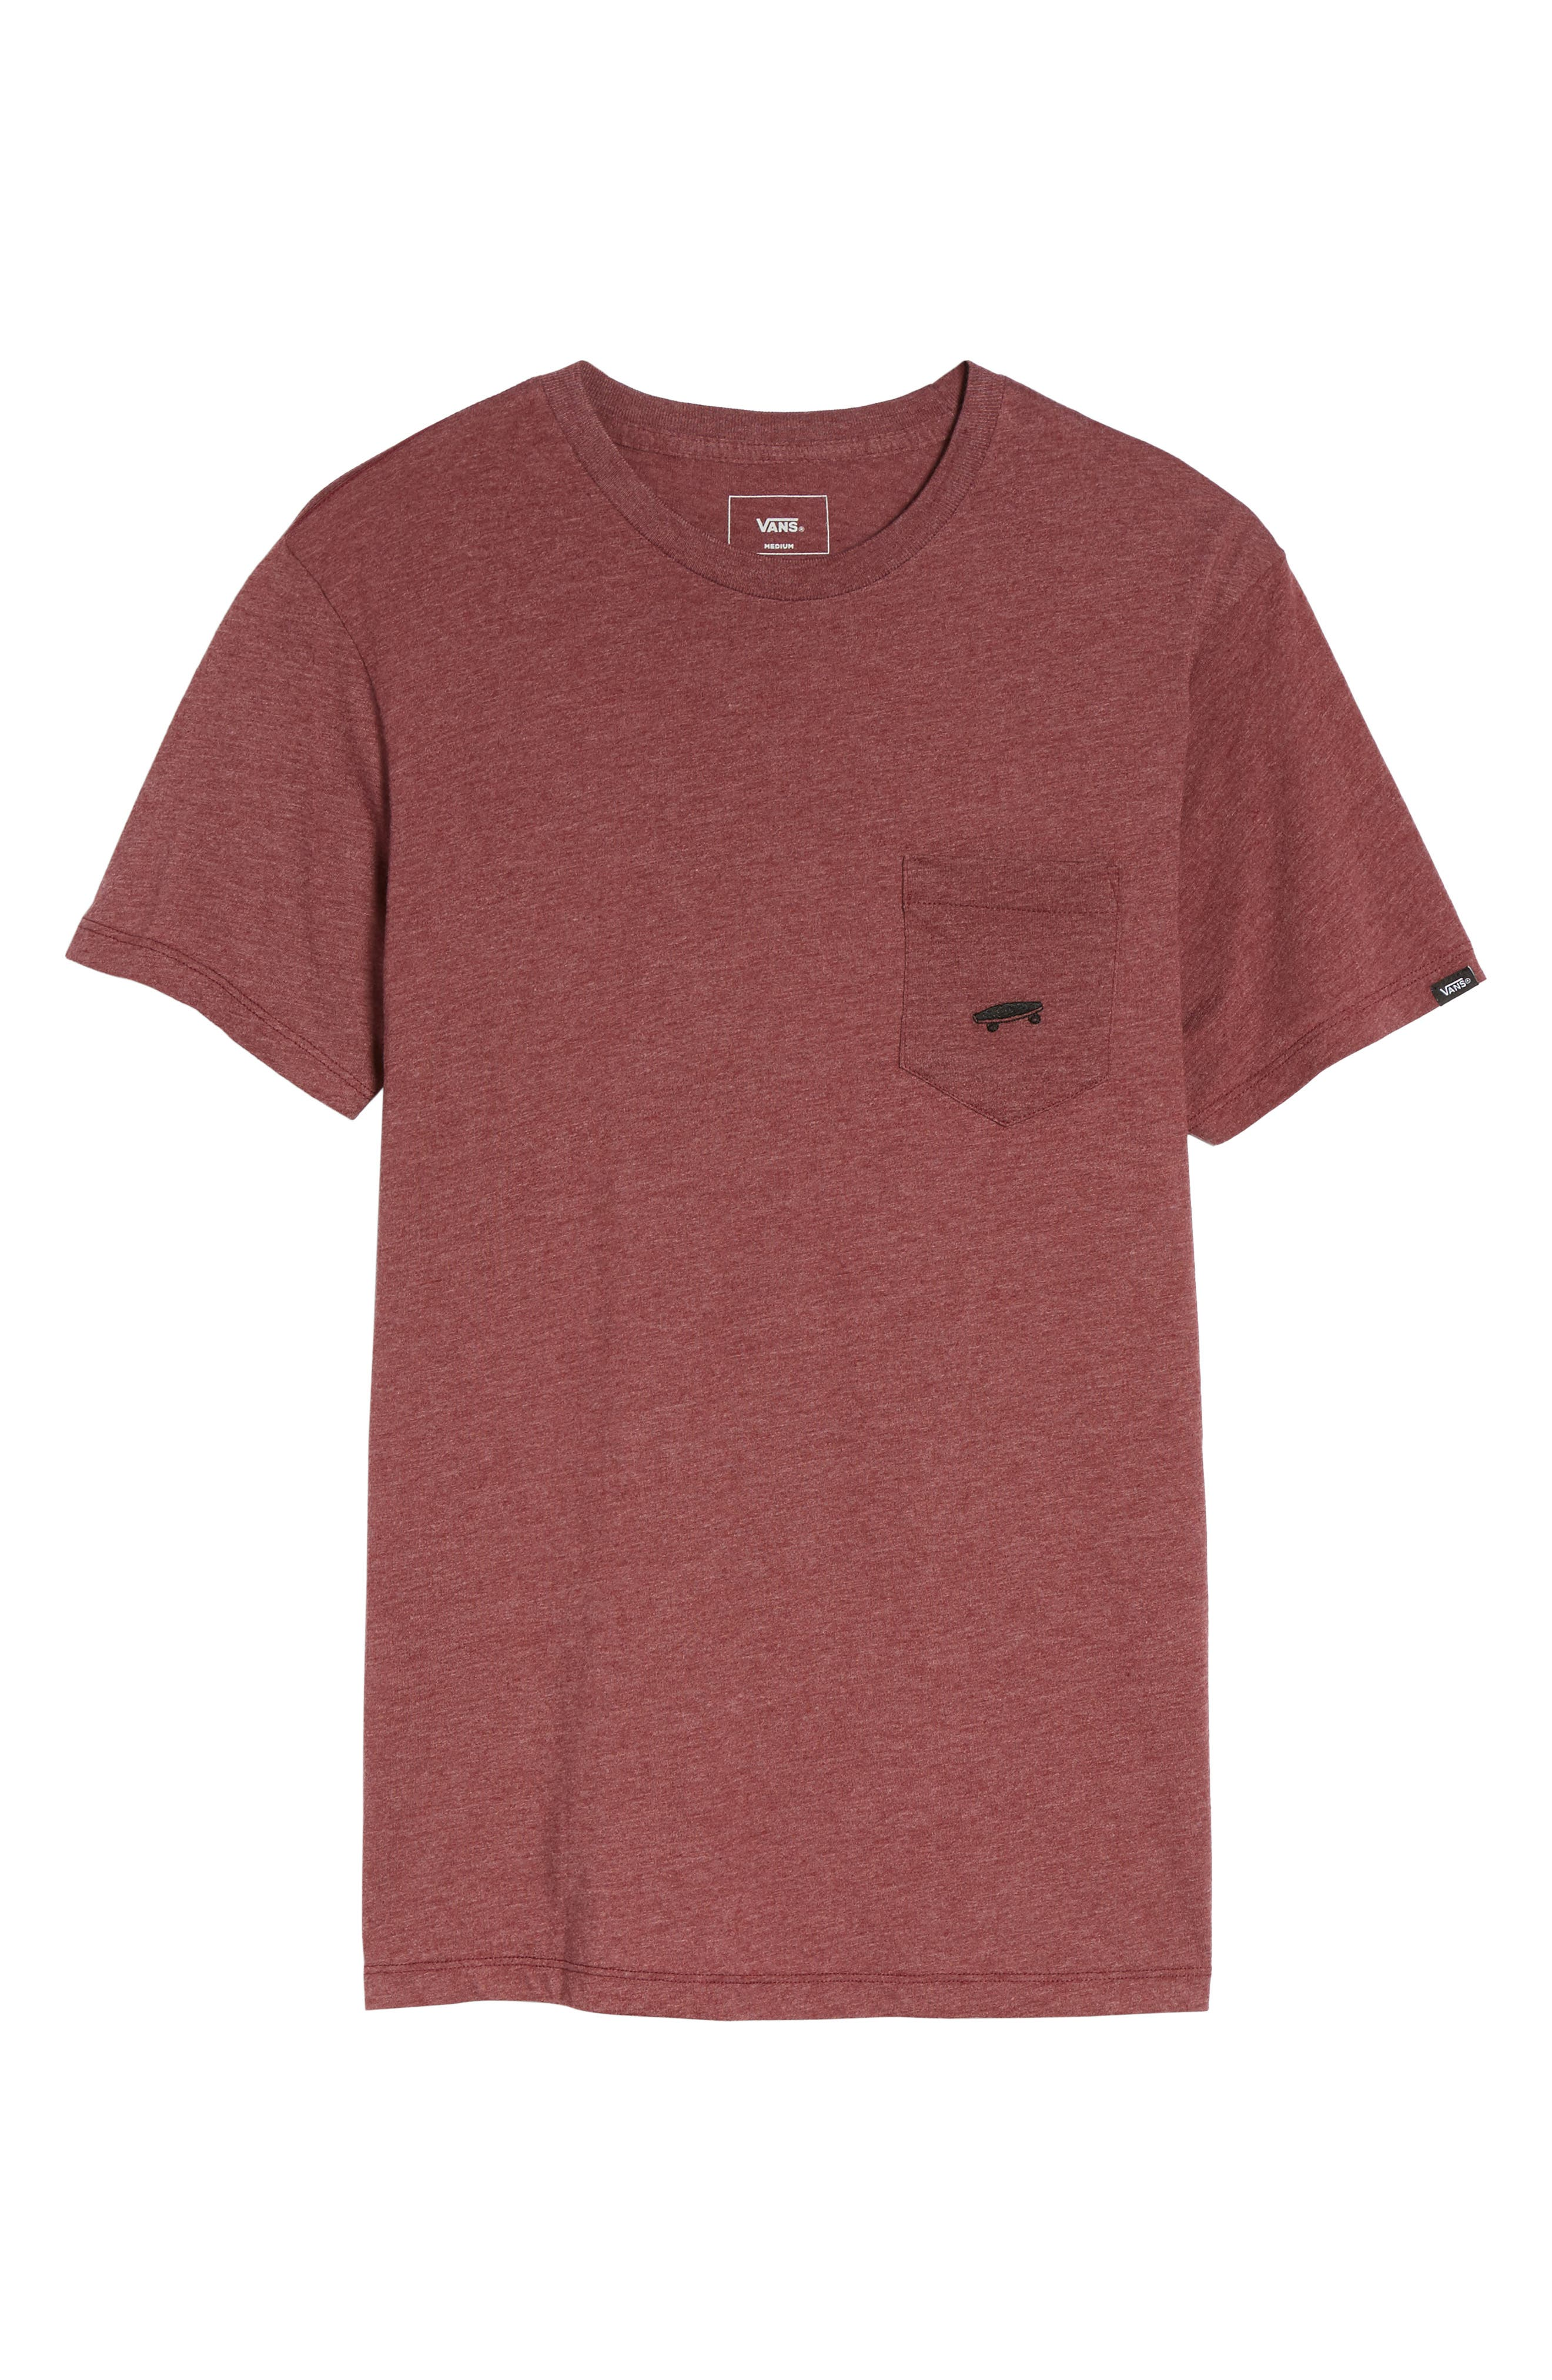 Vans Everyday Embroidered Pocket T-Shirt